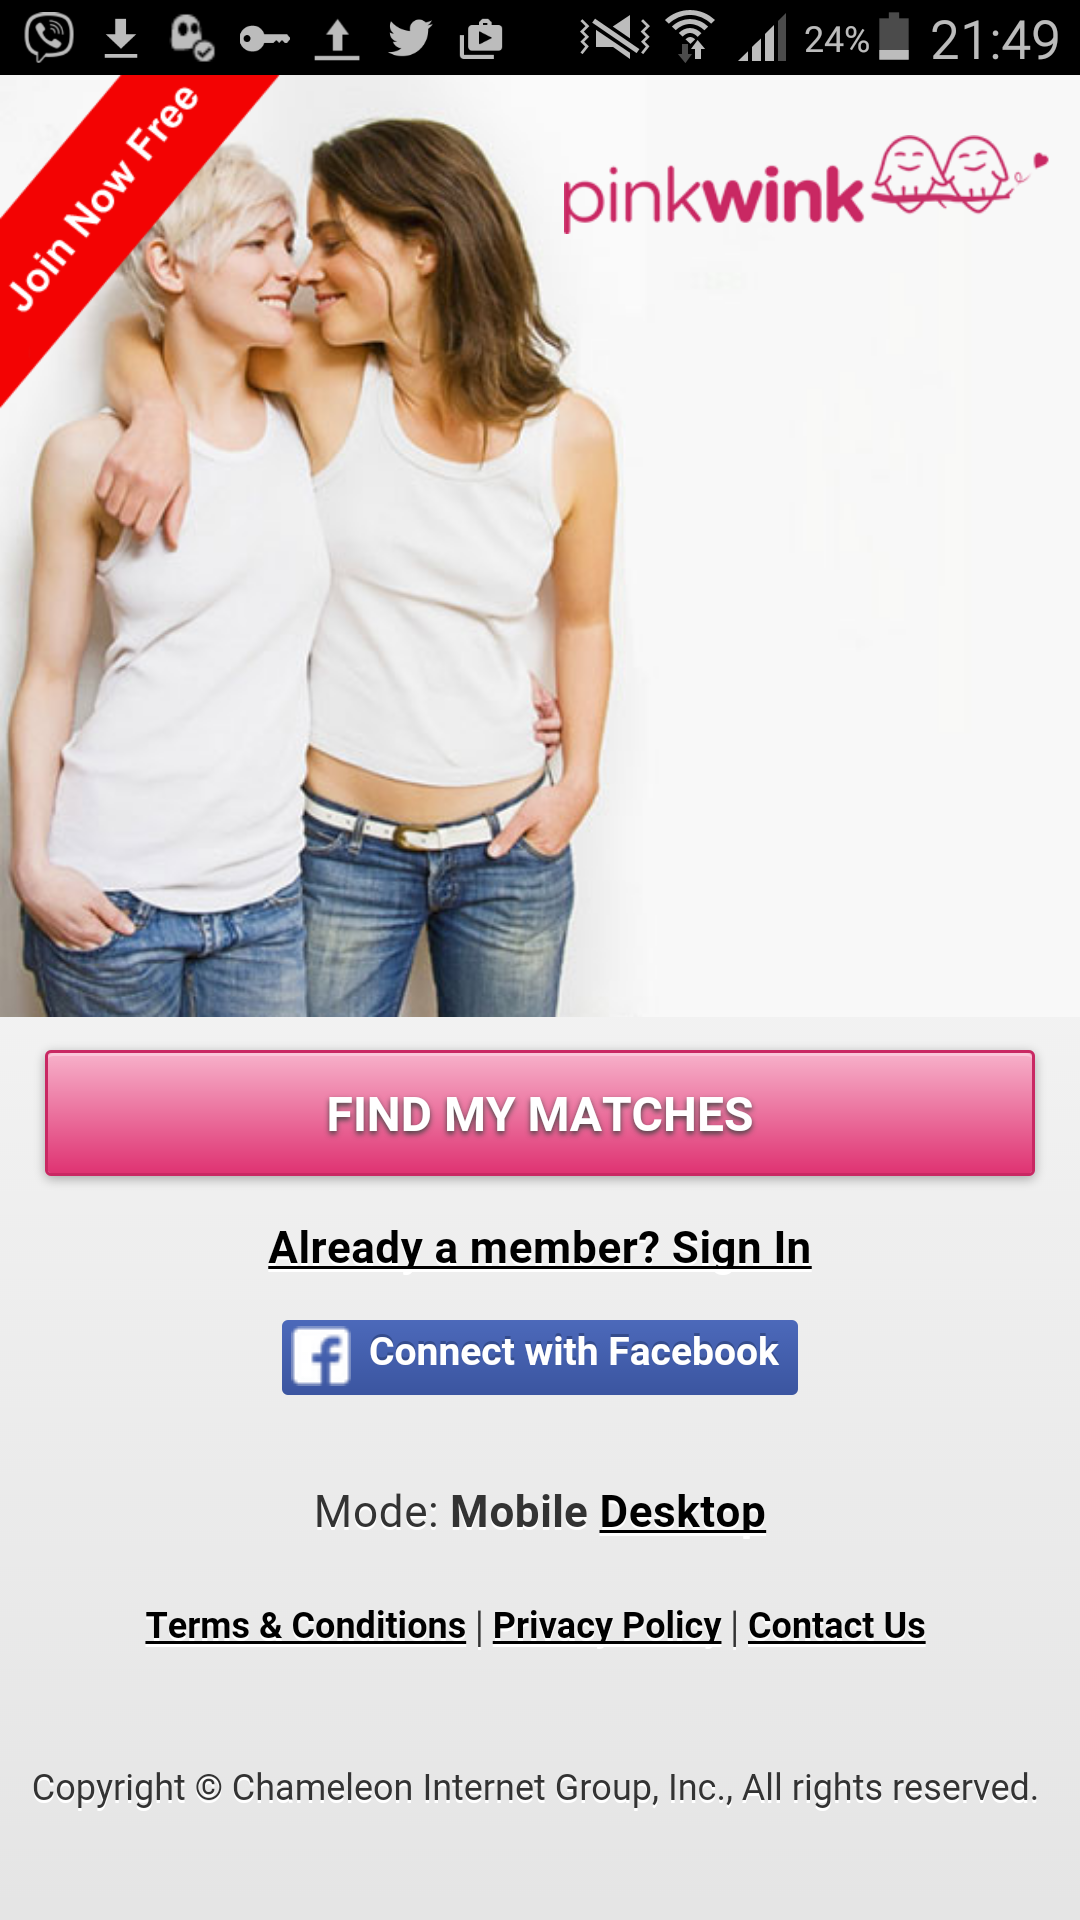 westborough lesbian dating site Gizmag is now new atlas extraordinary ideas moving the world forward.